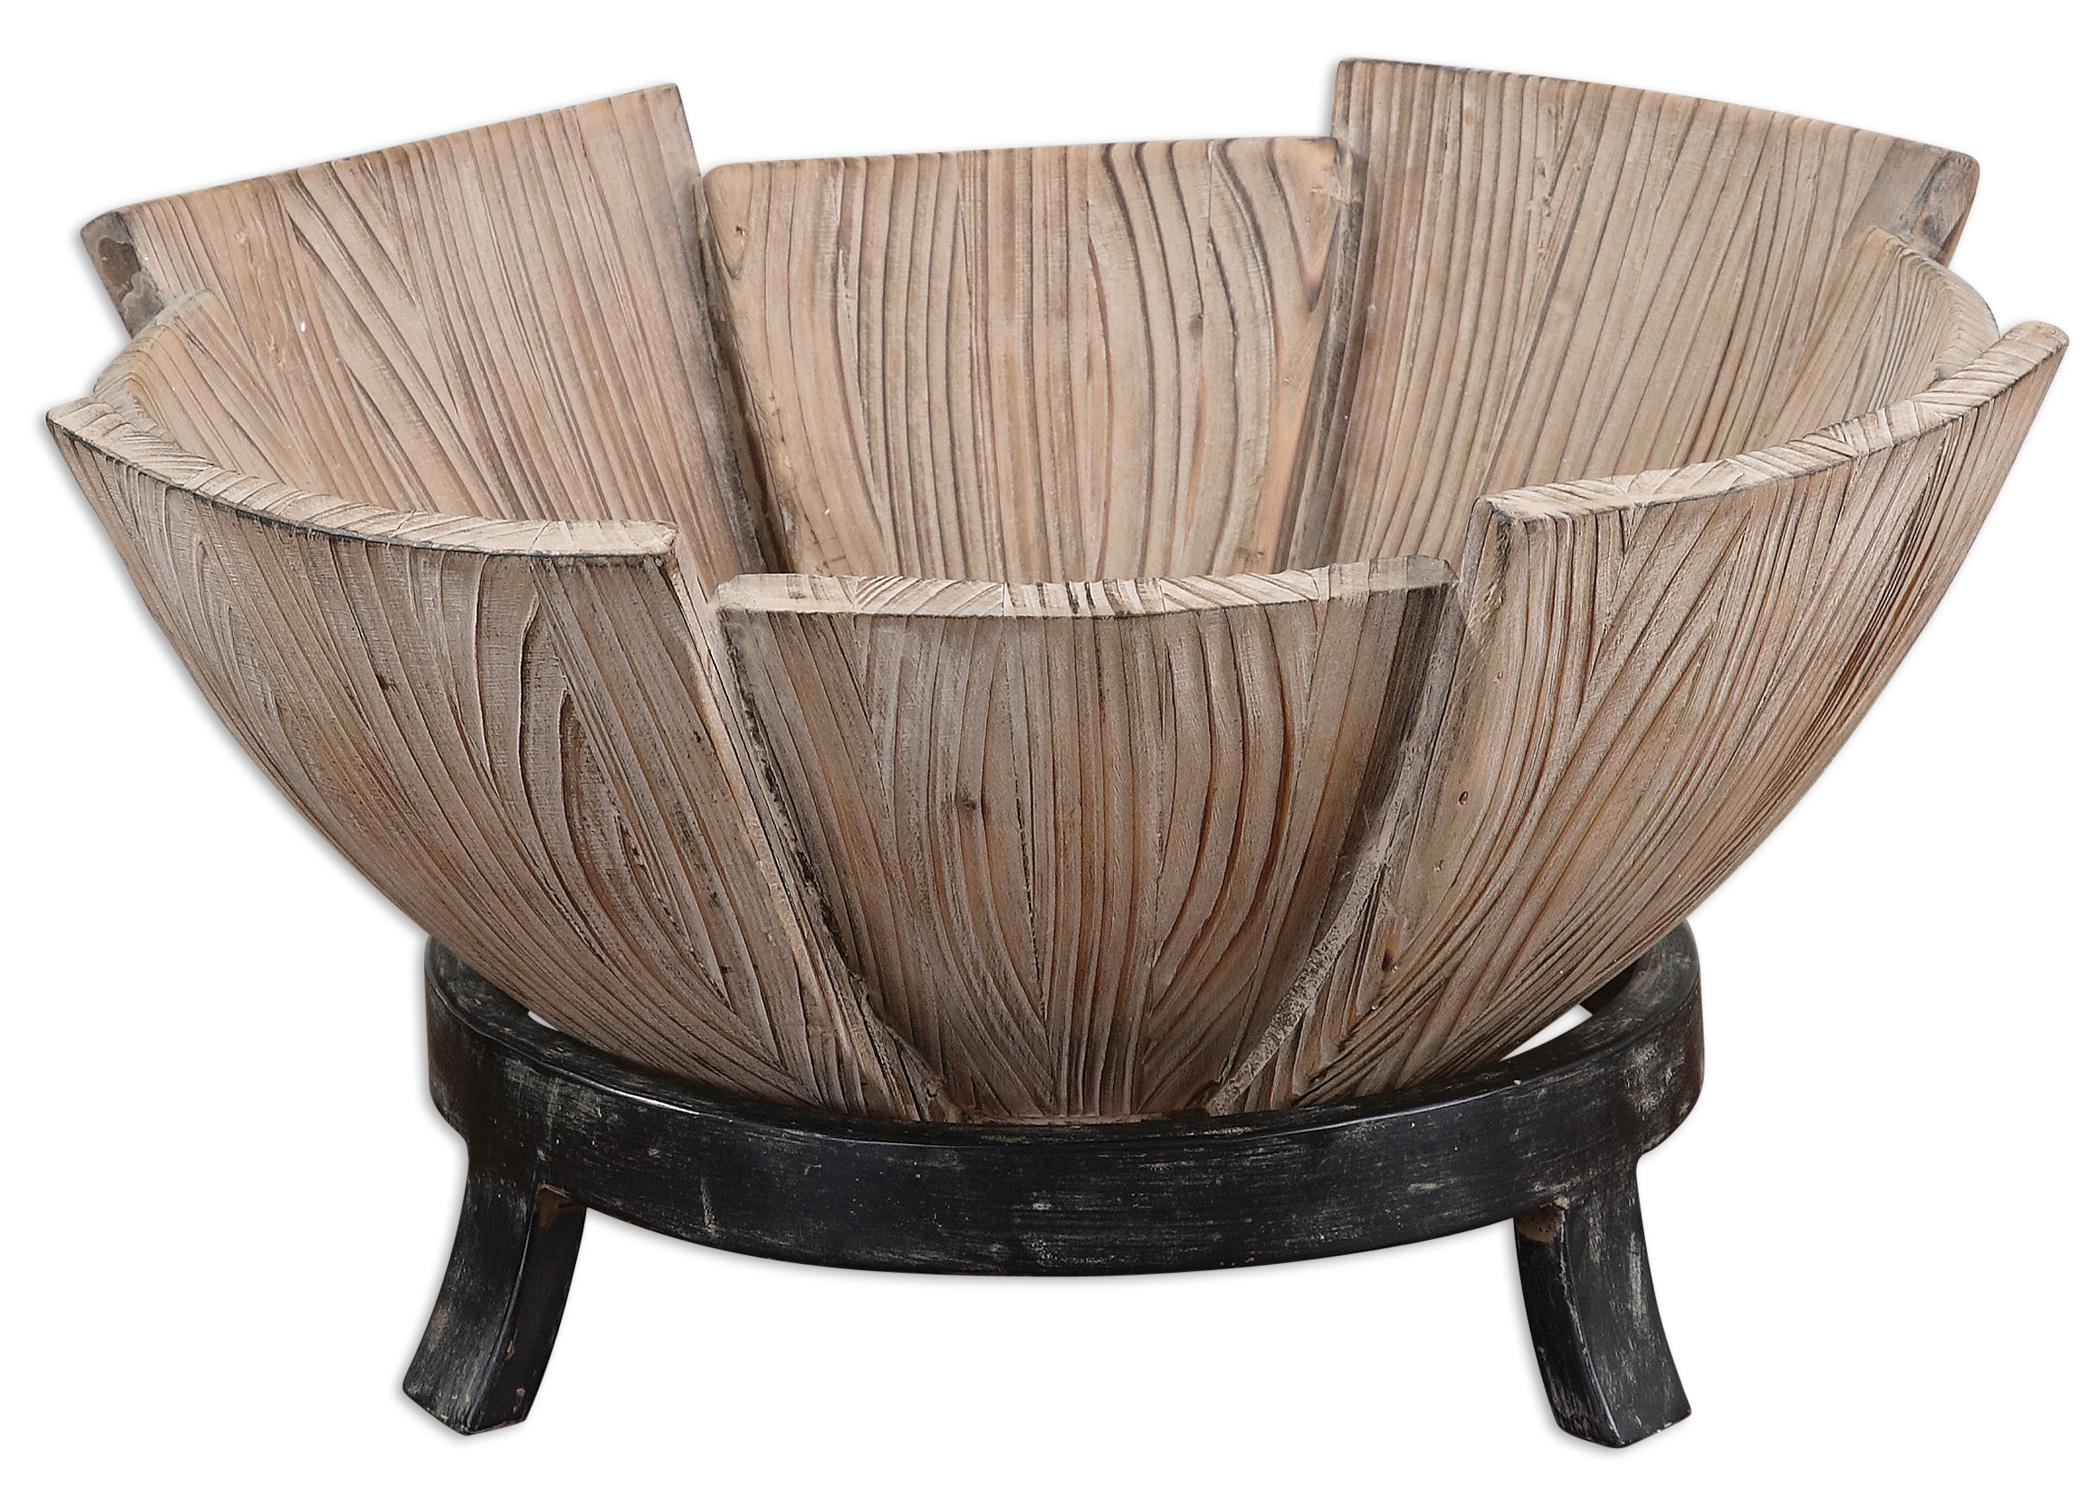 Accessories Daruna Bowl by Uttermost at Upper Room Home Furnishings